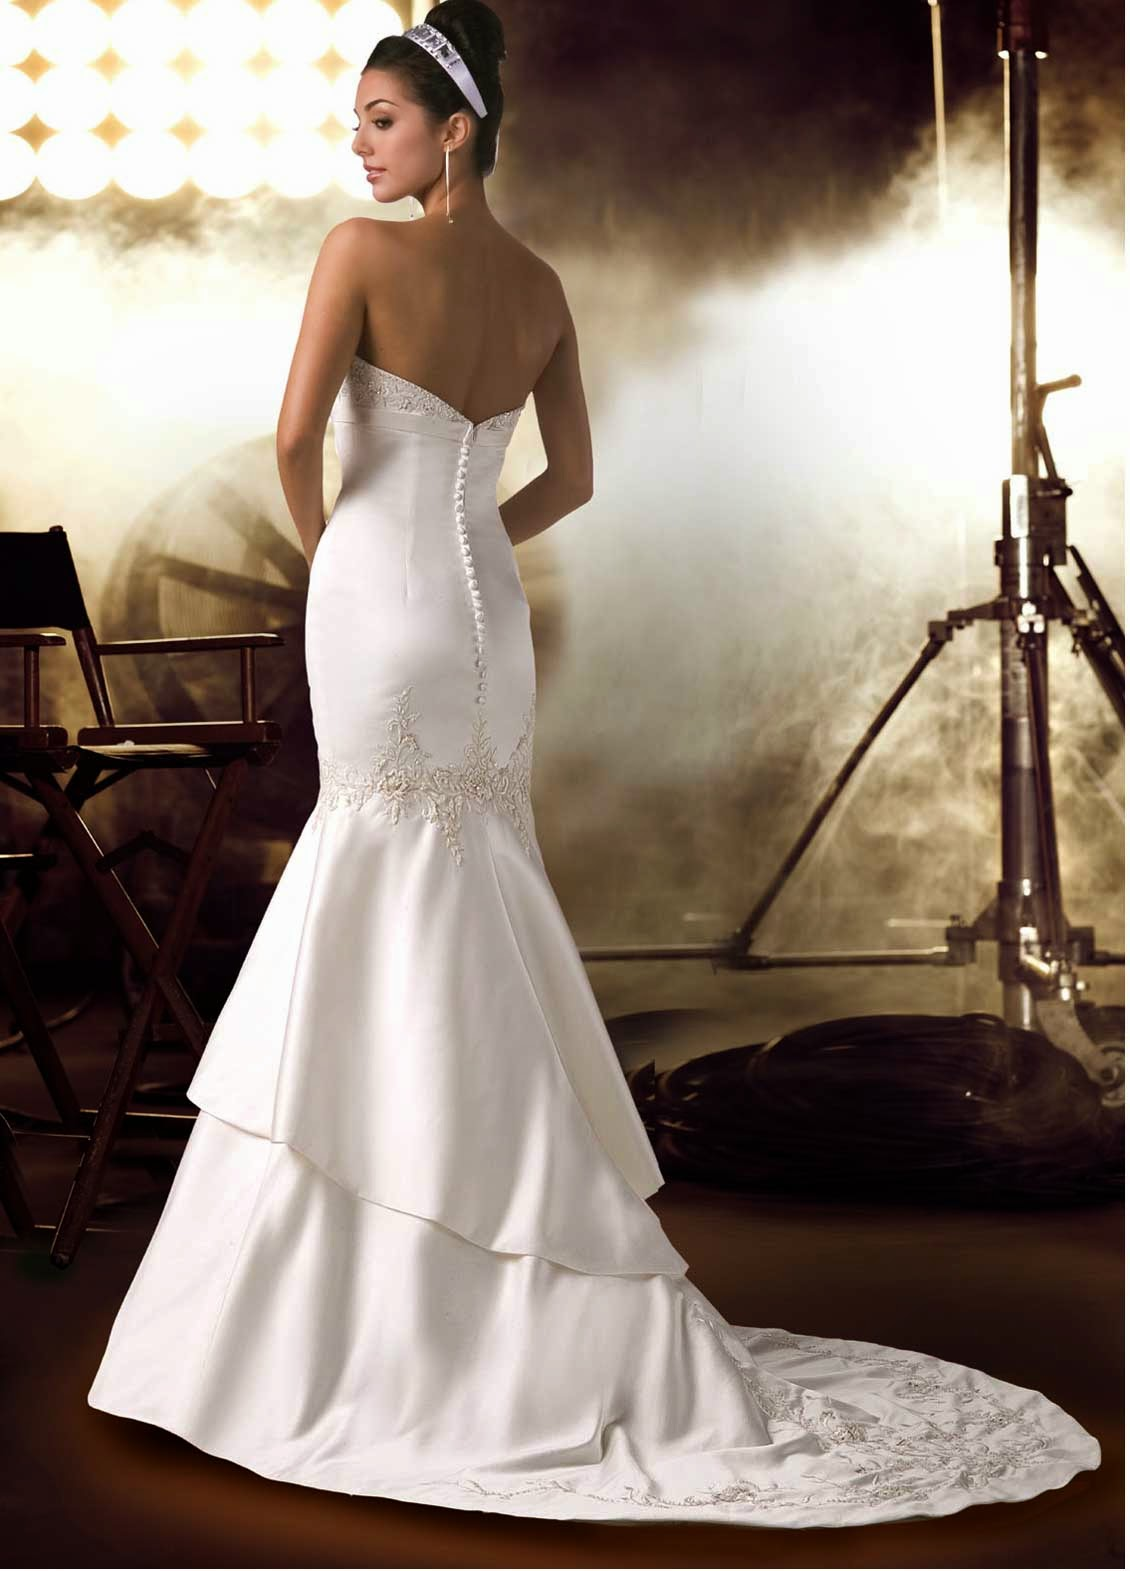 Vera Wang Mermaid Wedding Dresses Photos Concepts Ideas